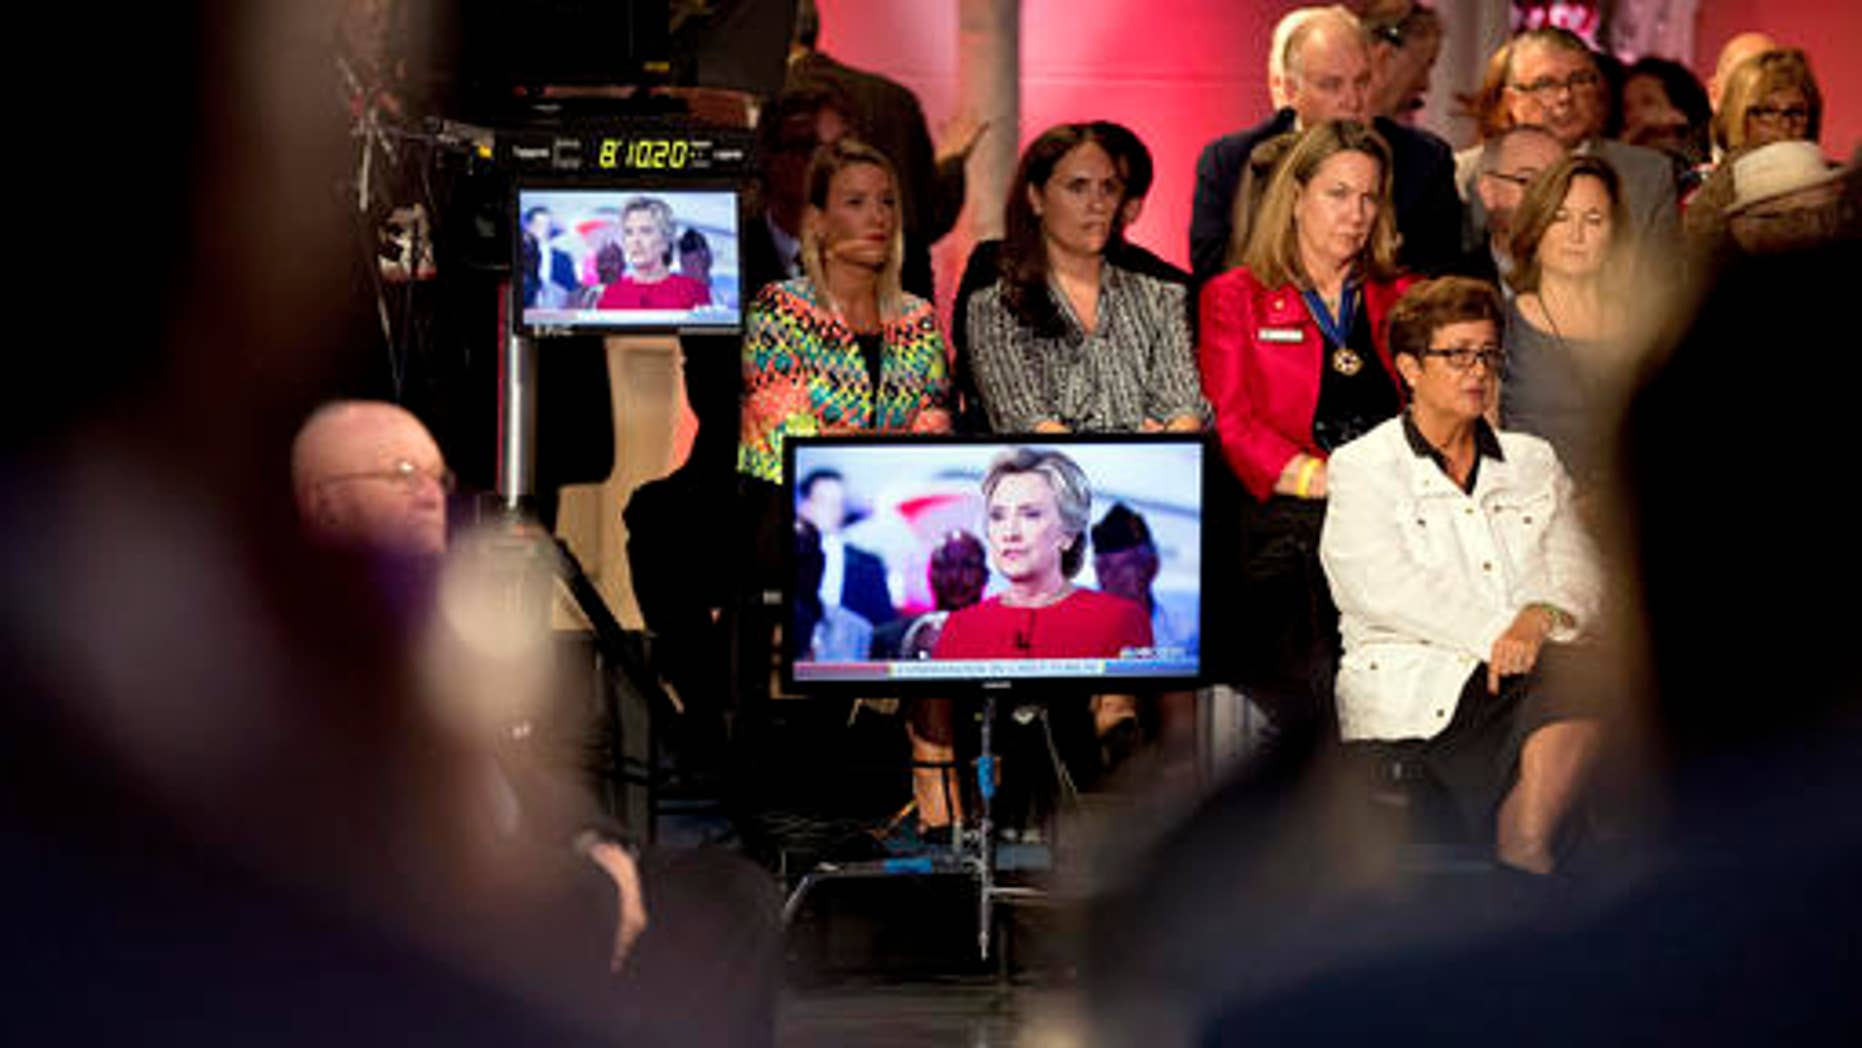 Members of the audience listen to Democratic presidential candidate Hillary Clinton, displayed on television screens as she speaks with 'Today' show co-anchor Matt Lauer at the NBC Commander-In-Chief Forum held at the Intrepid Sea, Air and Space museum aboard the decommissioned aircraft carrier Intrepid, New York, Wednesday, Sept. 7, 2016.